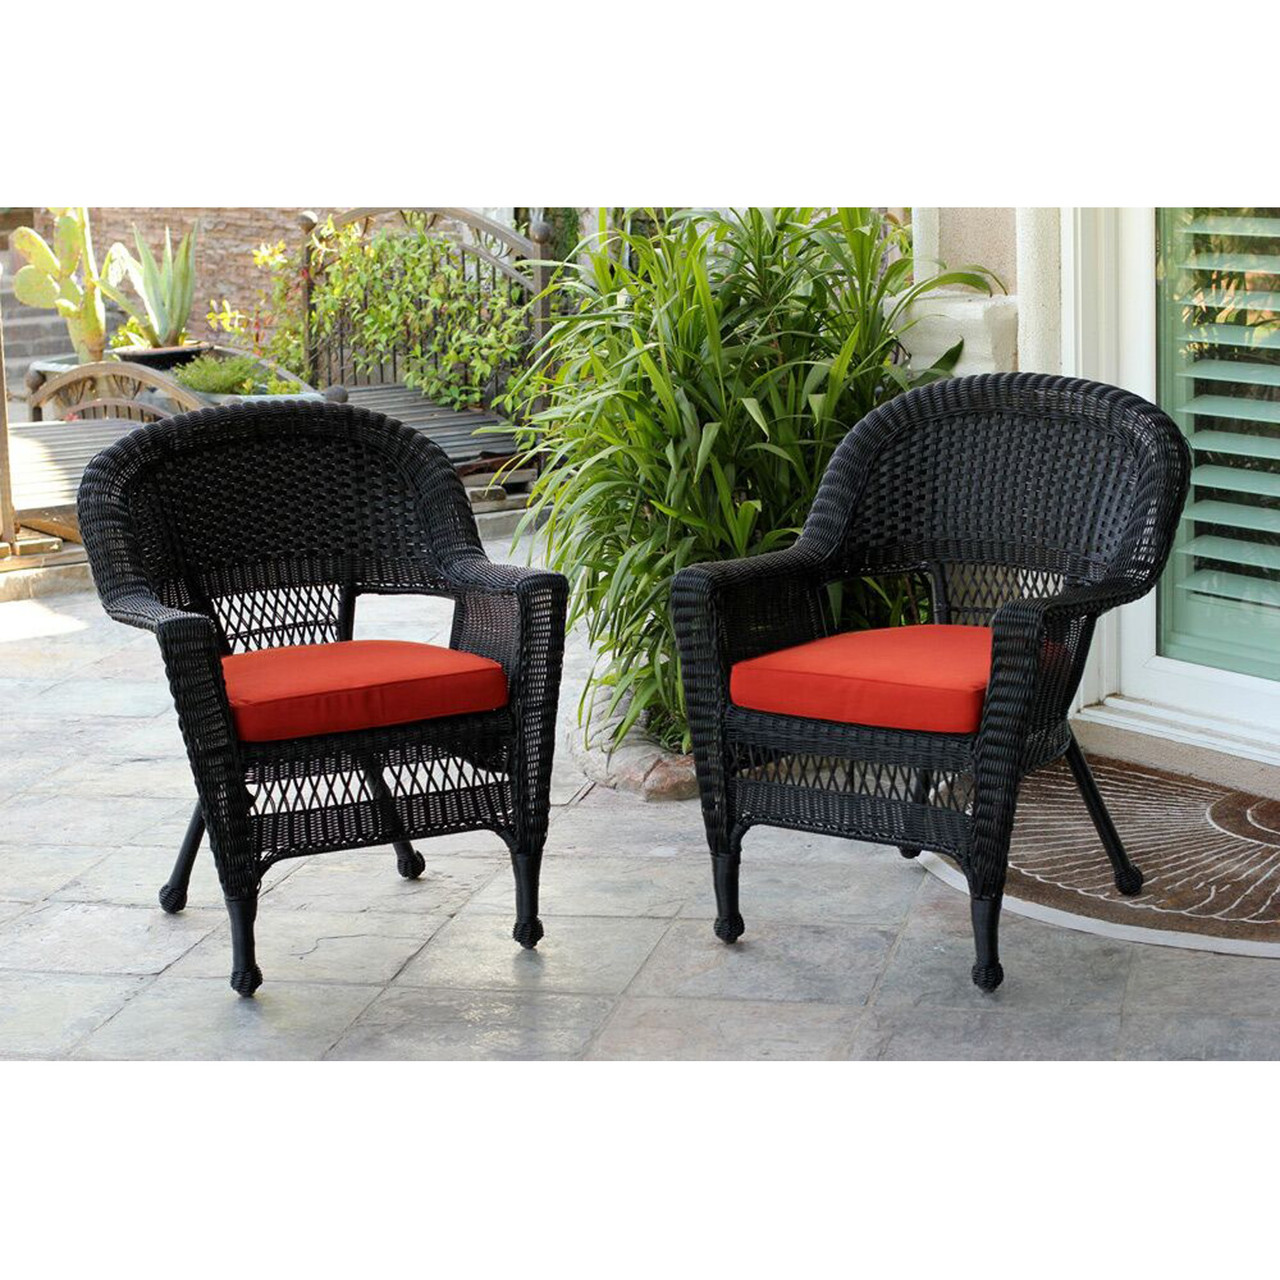 Astounding 2 Black Resin Wicker Outdoor Patio Garden Chairs With Red Orange Cushions 36 31556362 Lamtechconsult Wood Chair Design Ideas Lamtechconsultcom